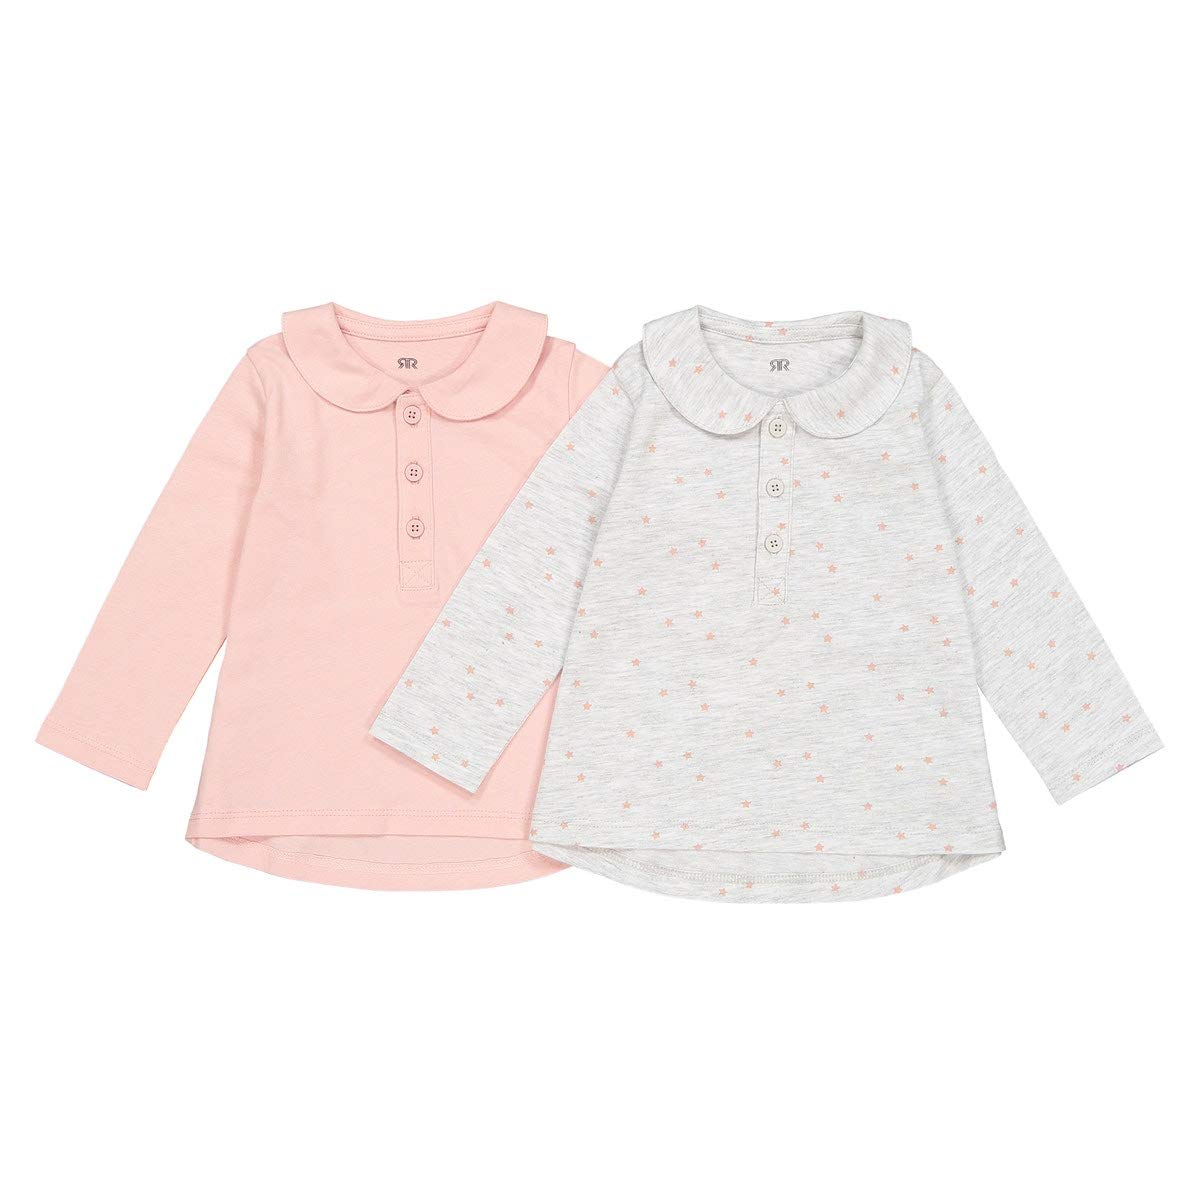 La Redoute Collections Pack of 2 Cotton Peter Pan Collar T-Shirts 1 Month-3 Years